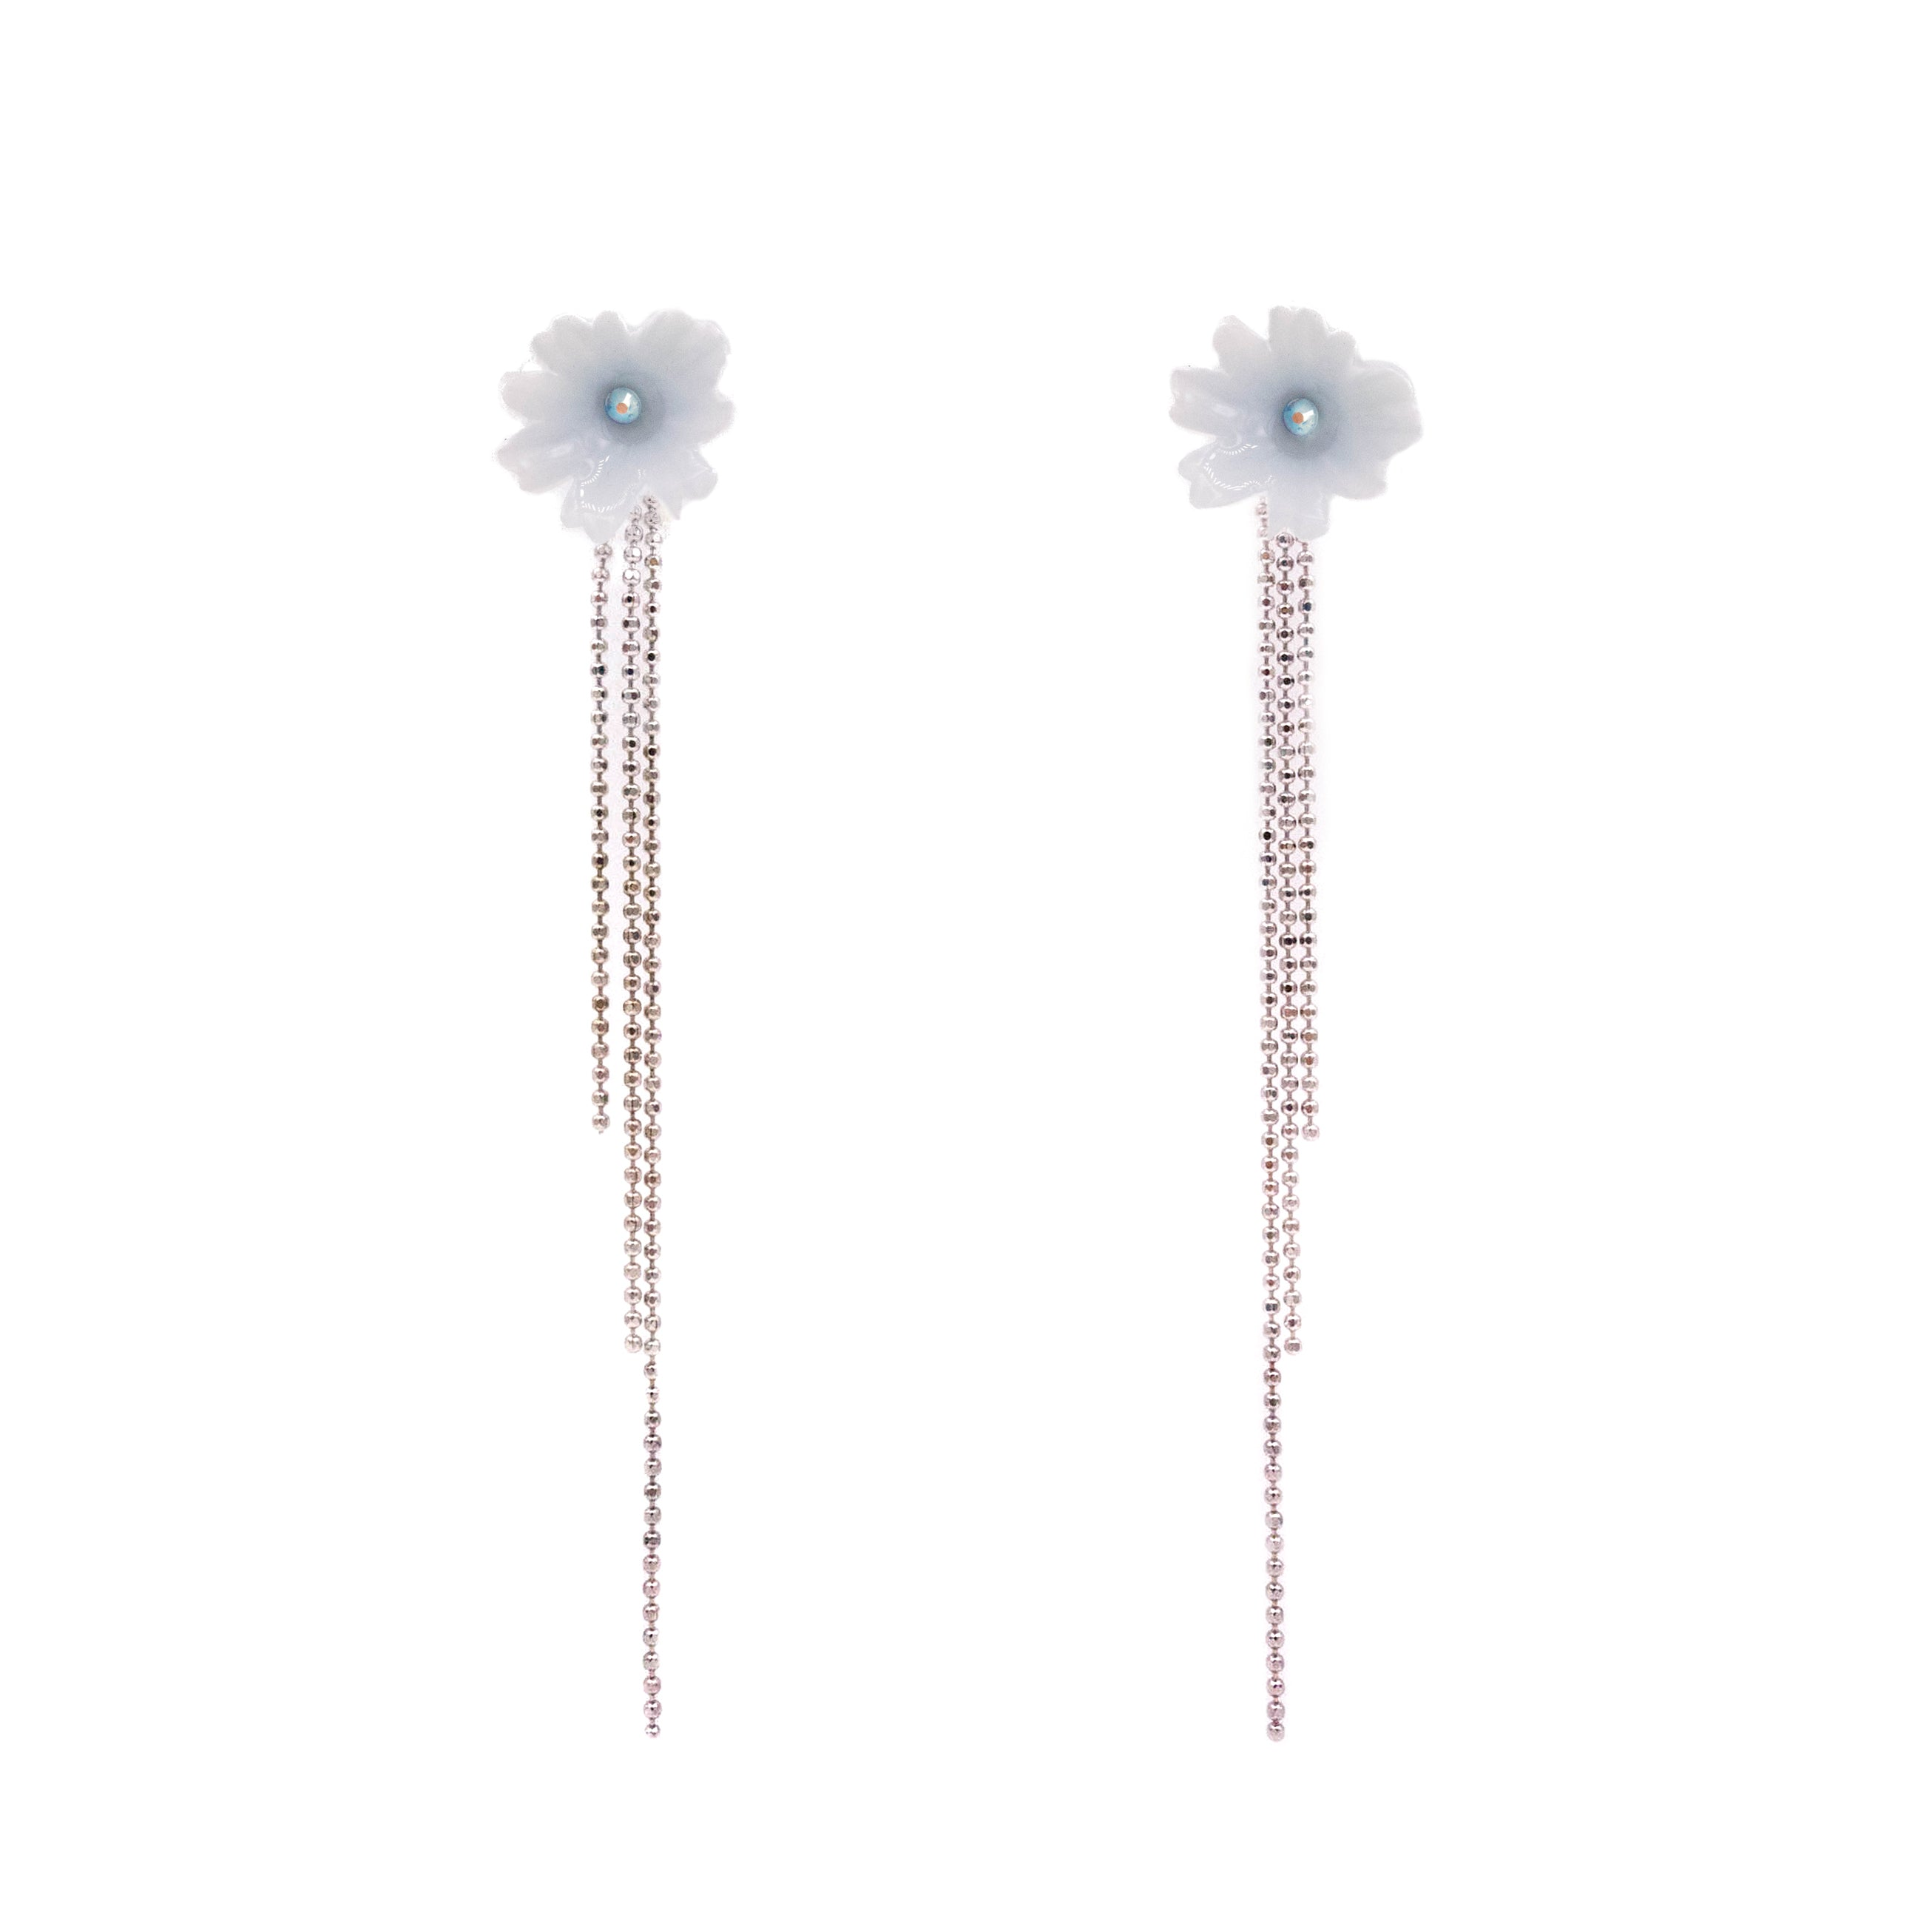 Rainshower 3-in-1 925 Silver Bouquet Earrings Set